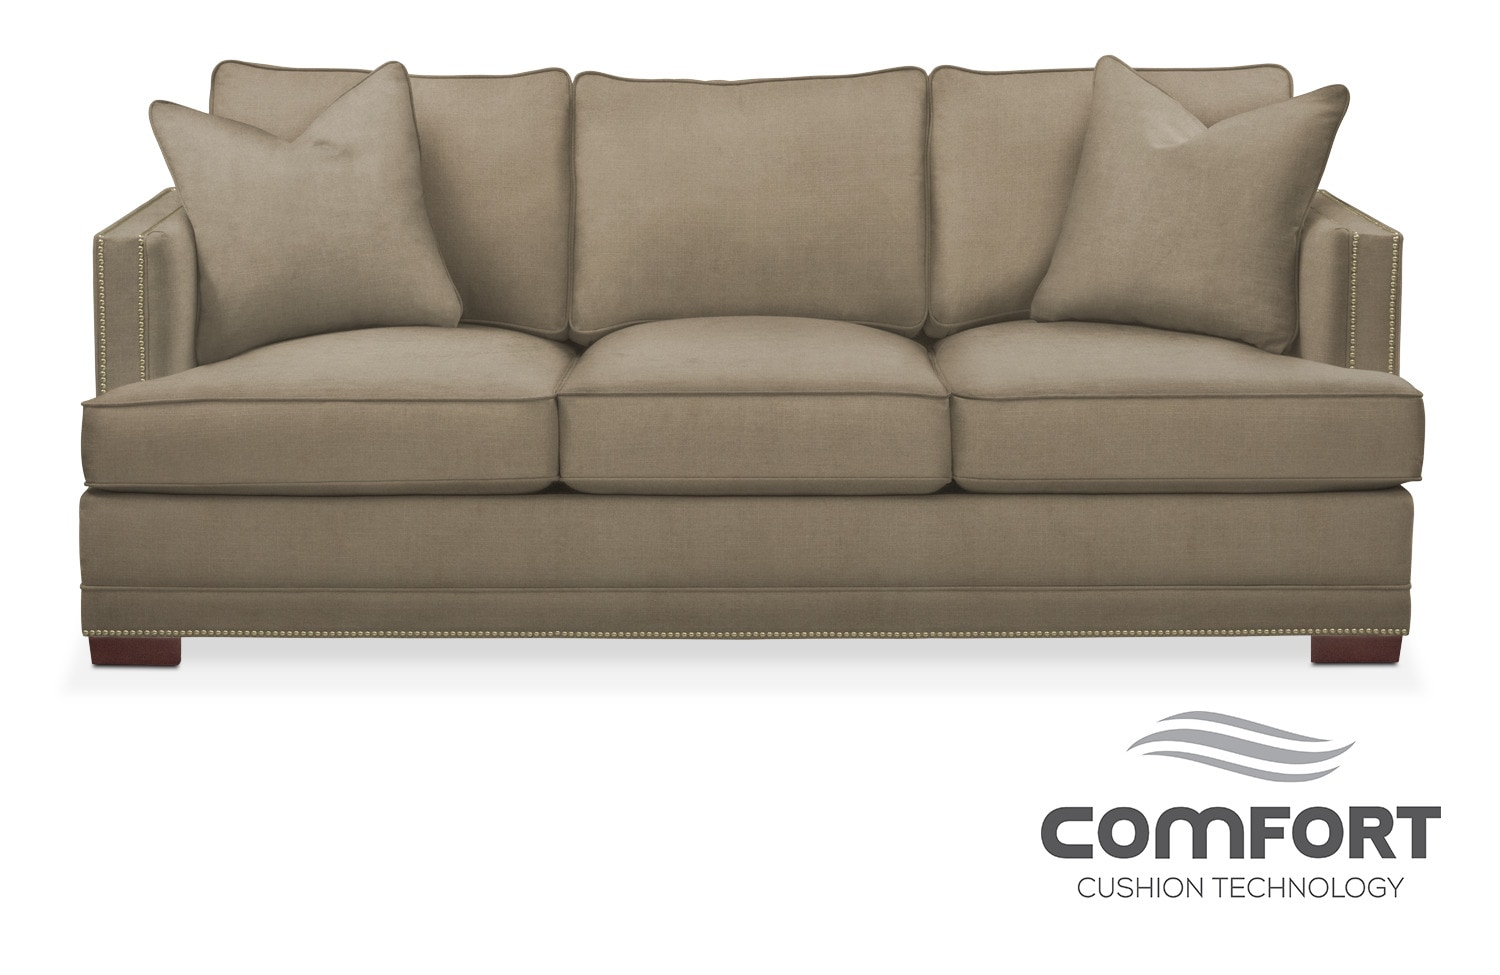 Sofas couches living room seating american signature for Comfort living furniture